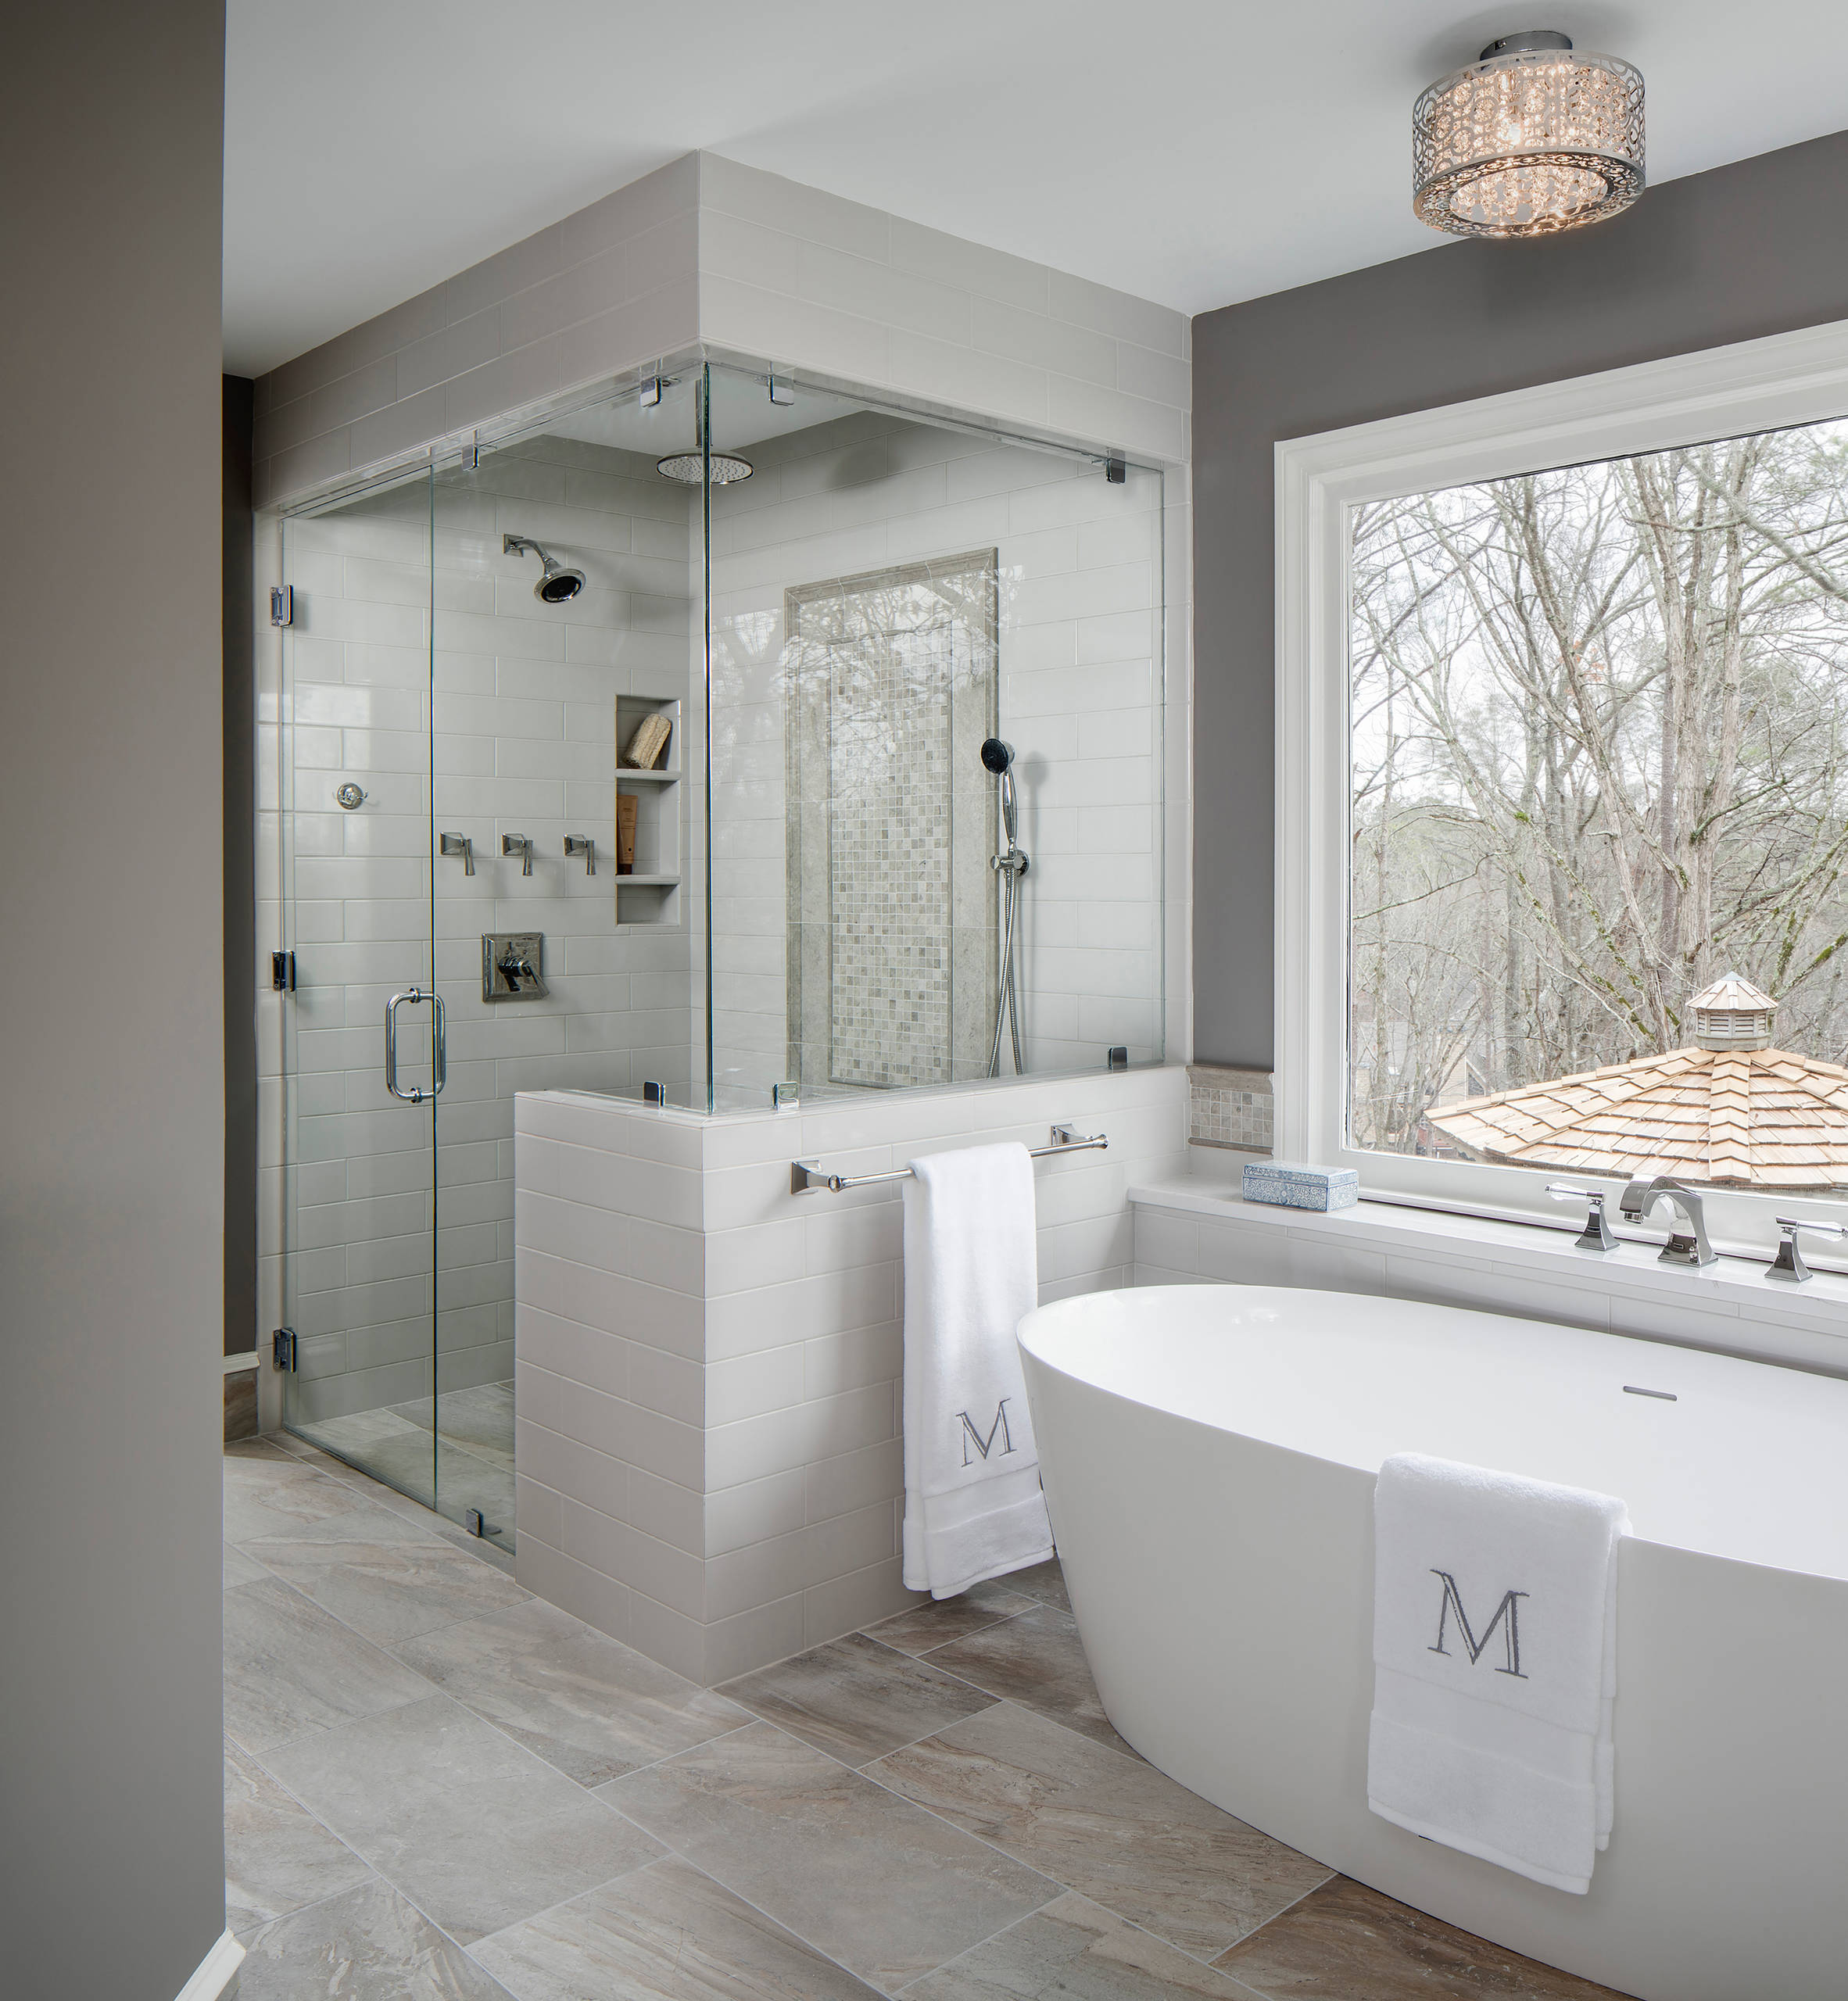 999 Beautiful Walk In Shower Pictures Ideas October 2020 Houzz